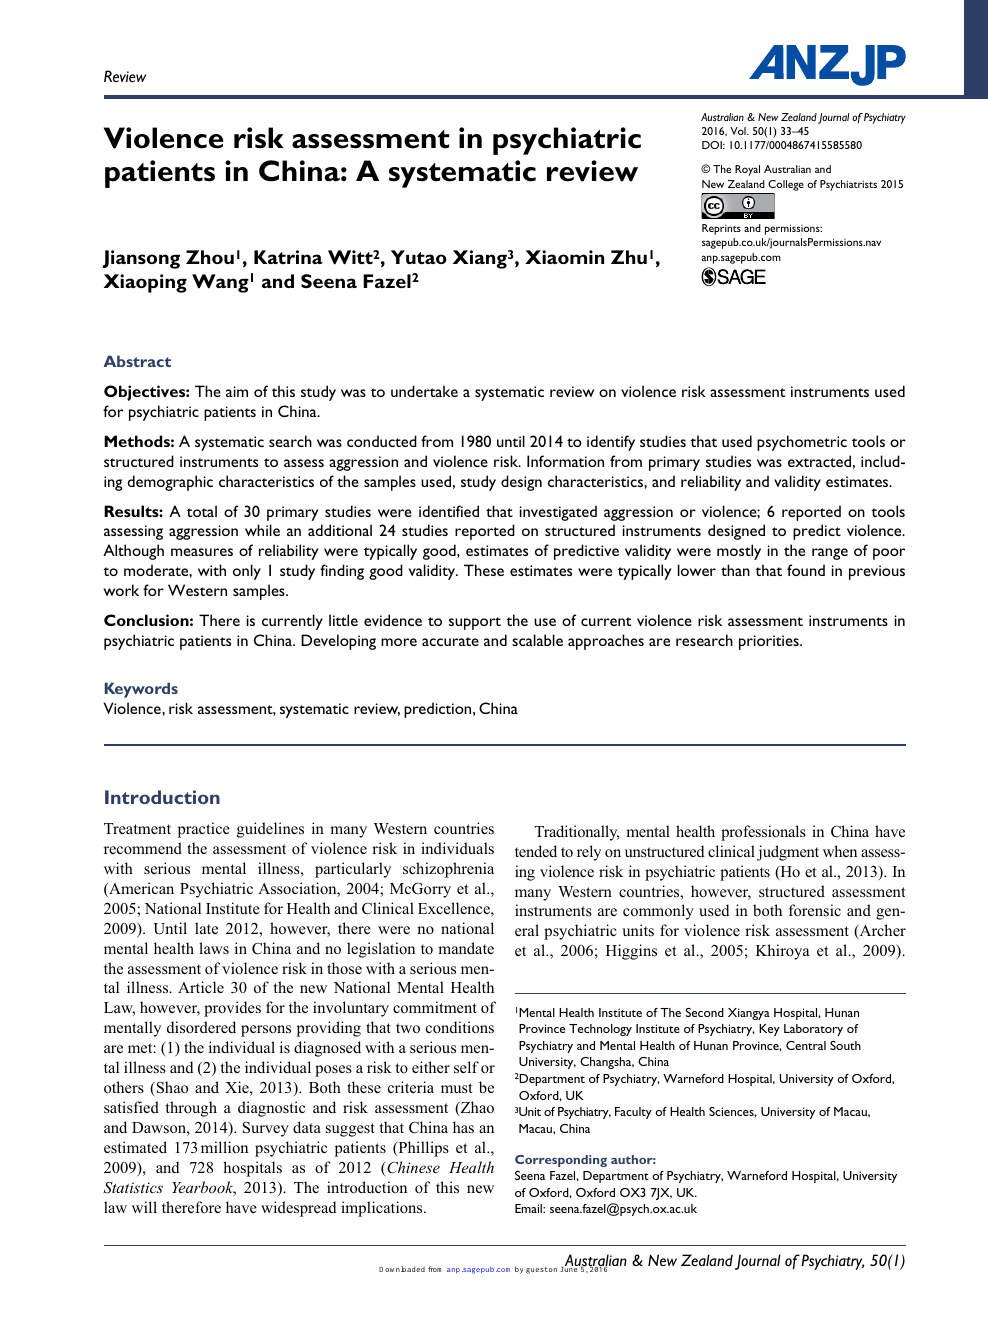 Violence risk assessment in psychiatric patients in China: A